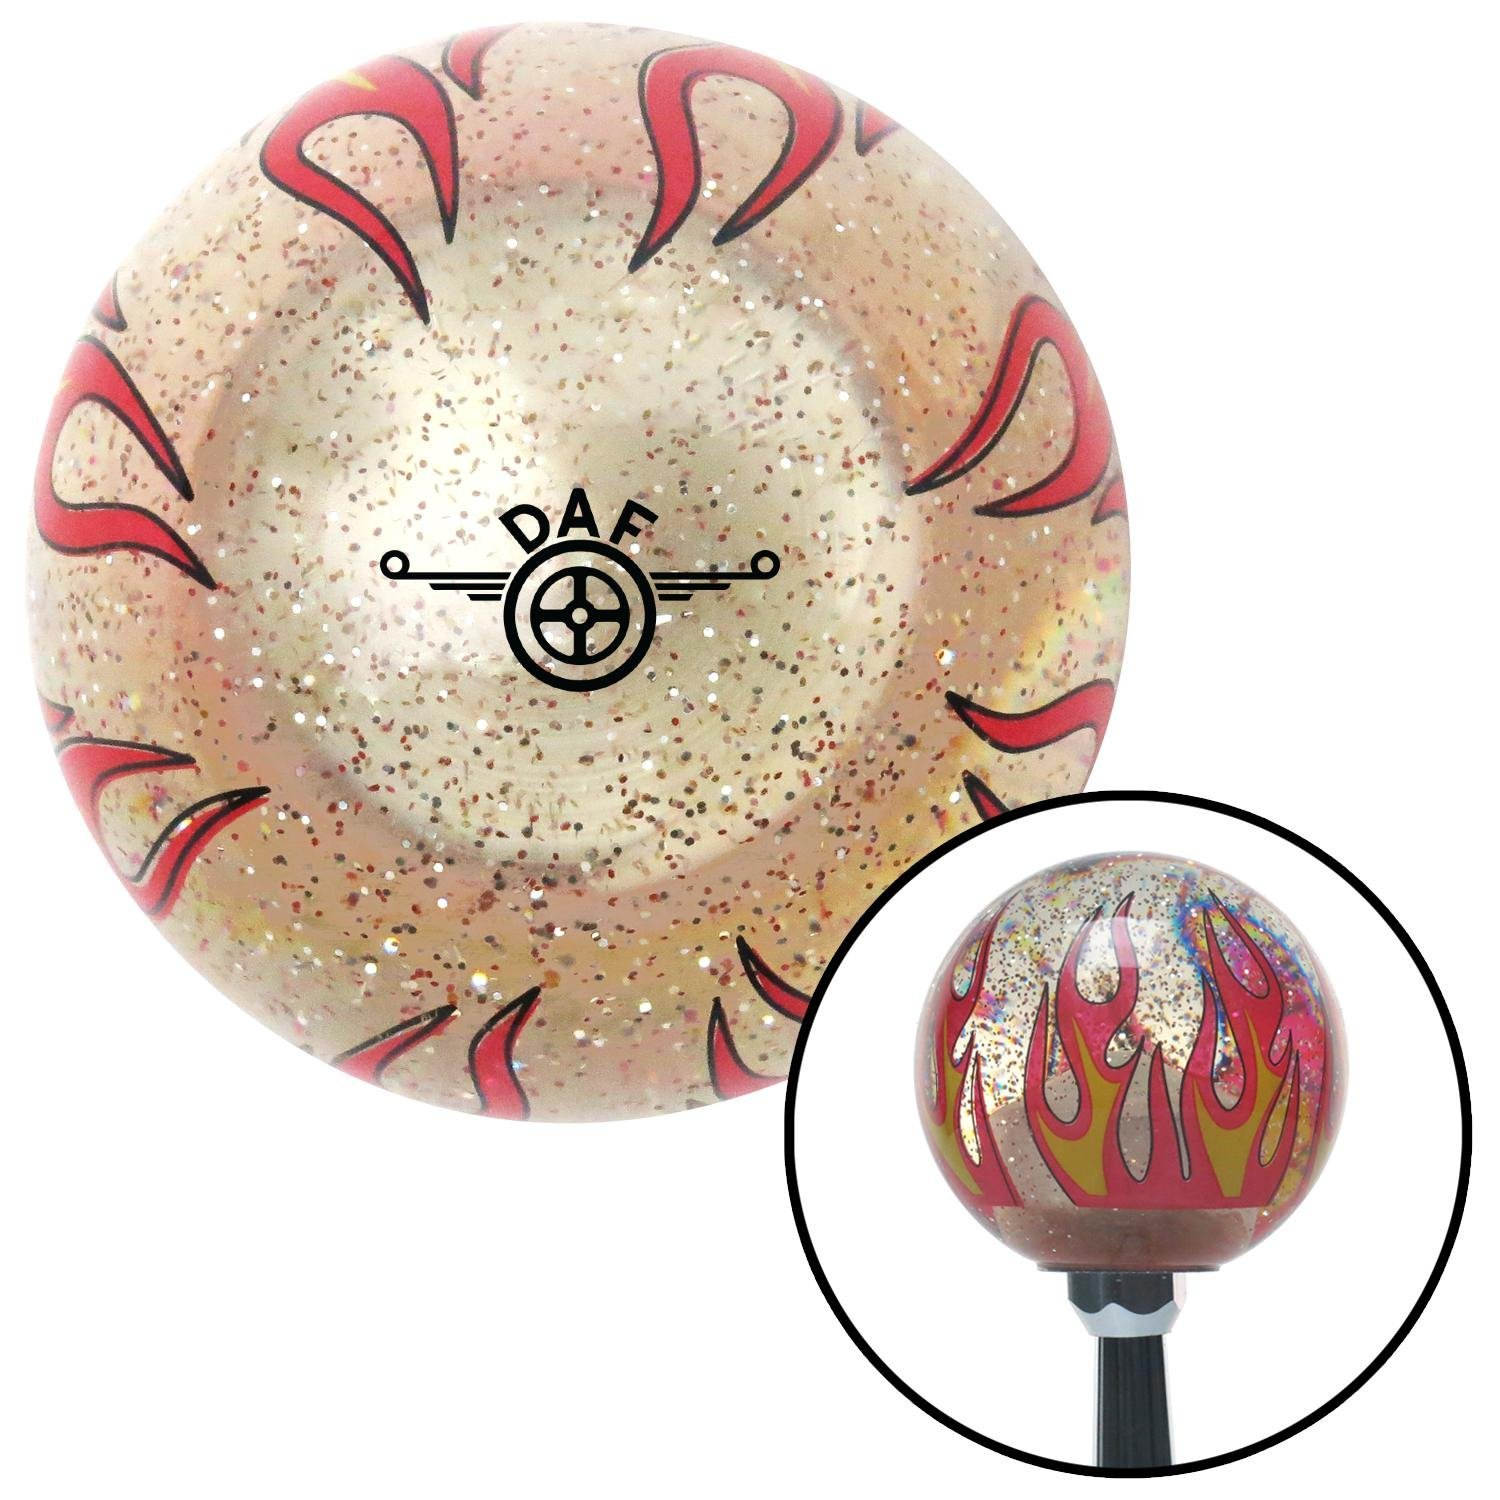 American Shifter 295885 Shift Knob Black DAF Logo Clear Flame Metal Flake with M16 x 1.5 Insert